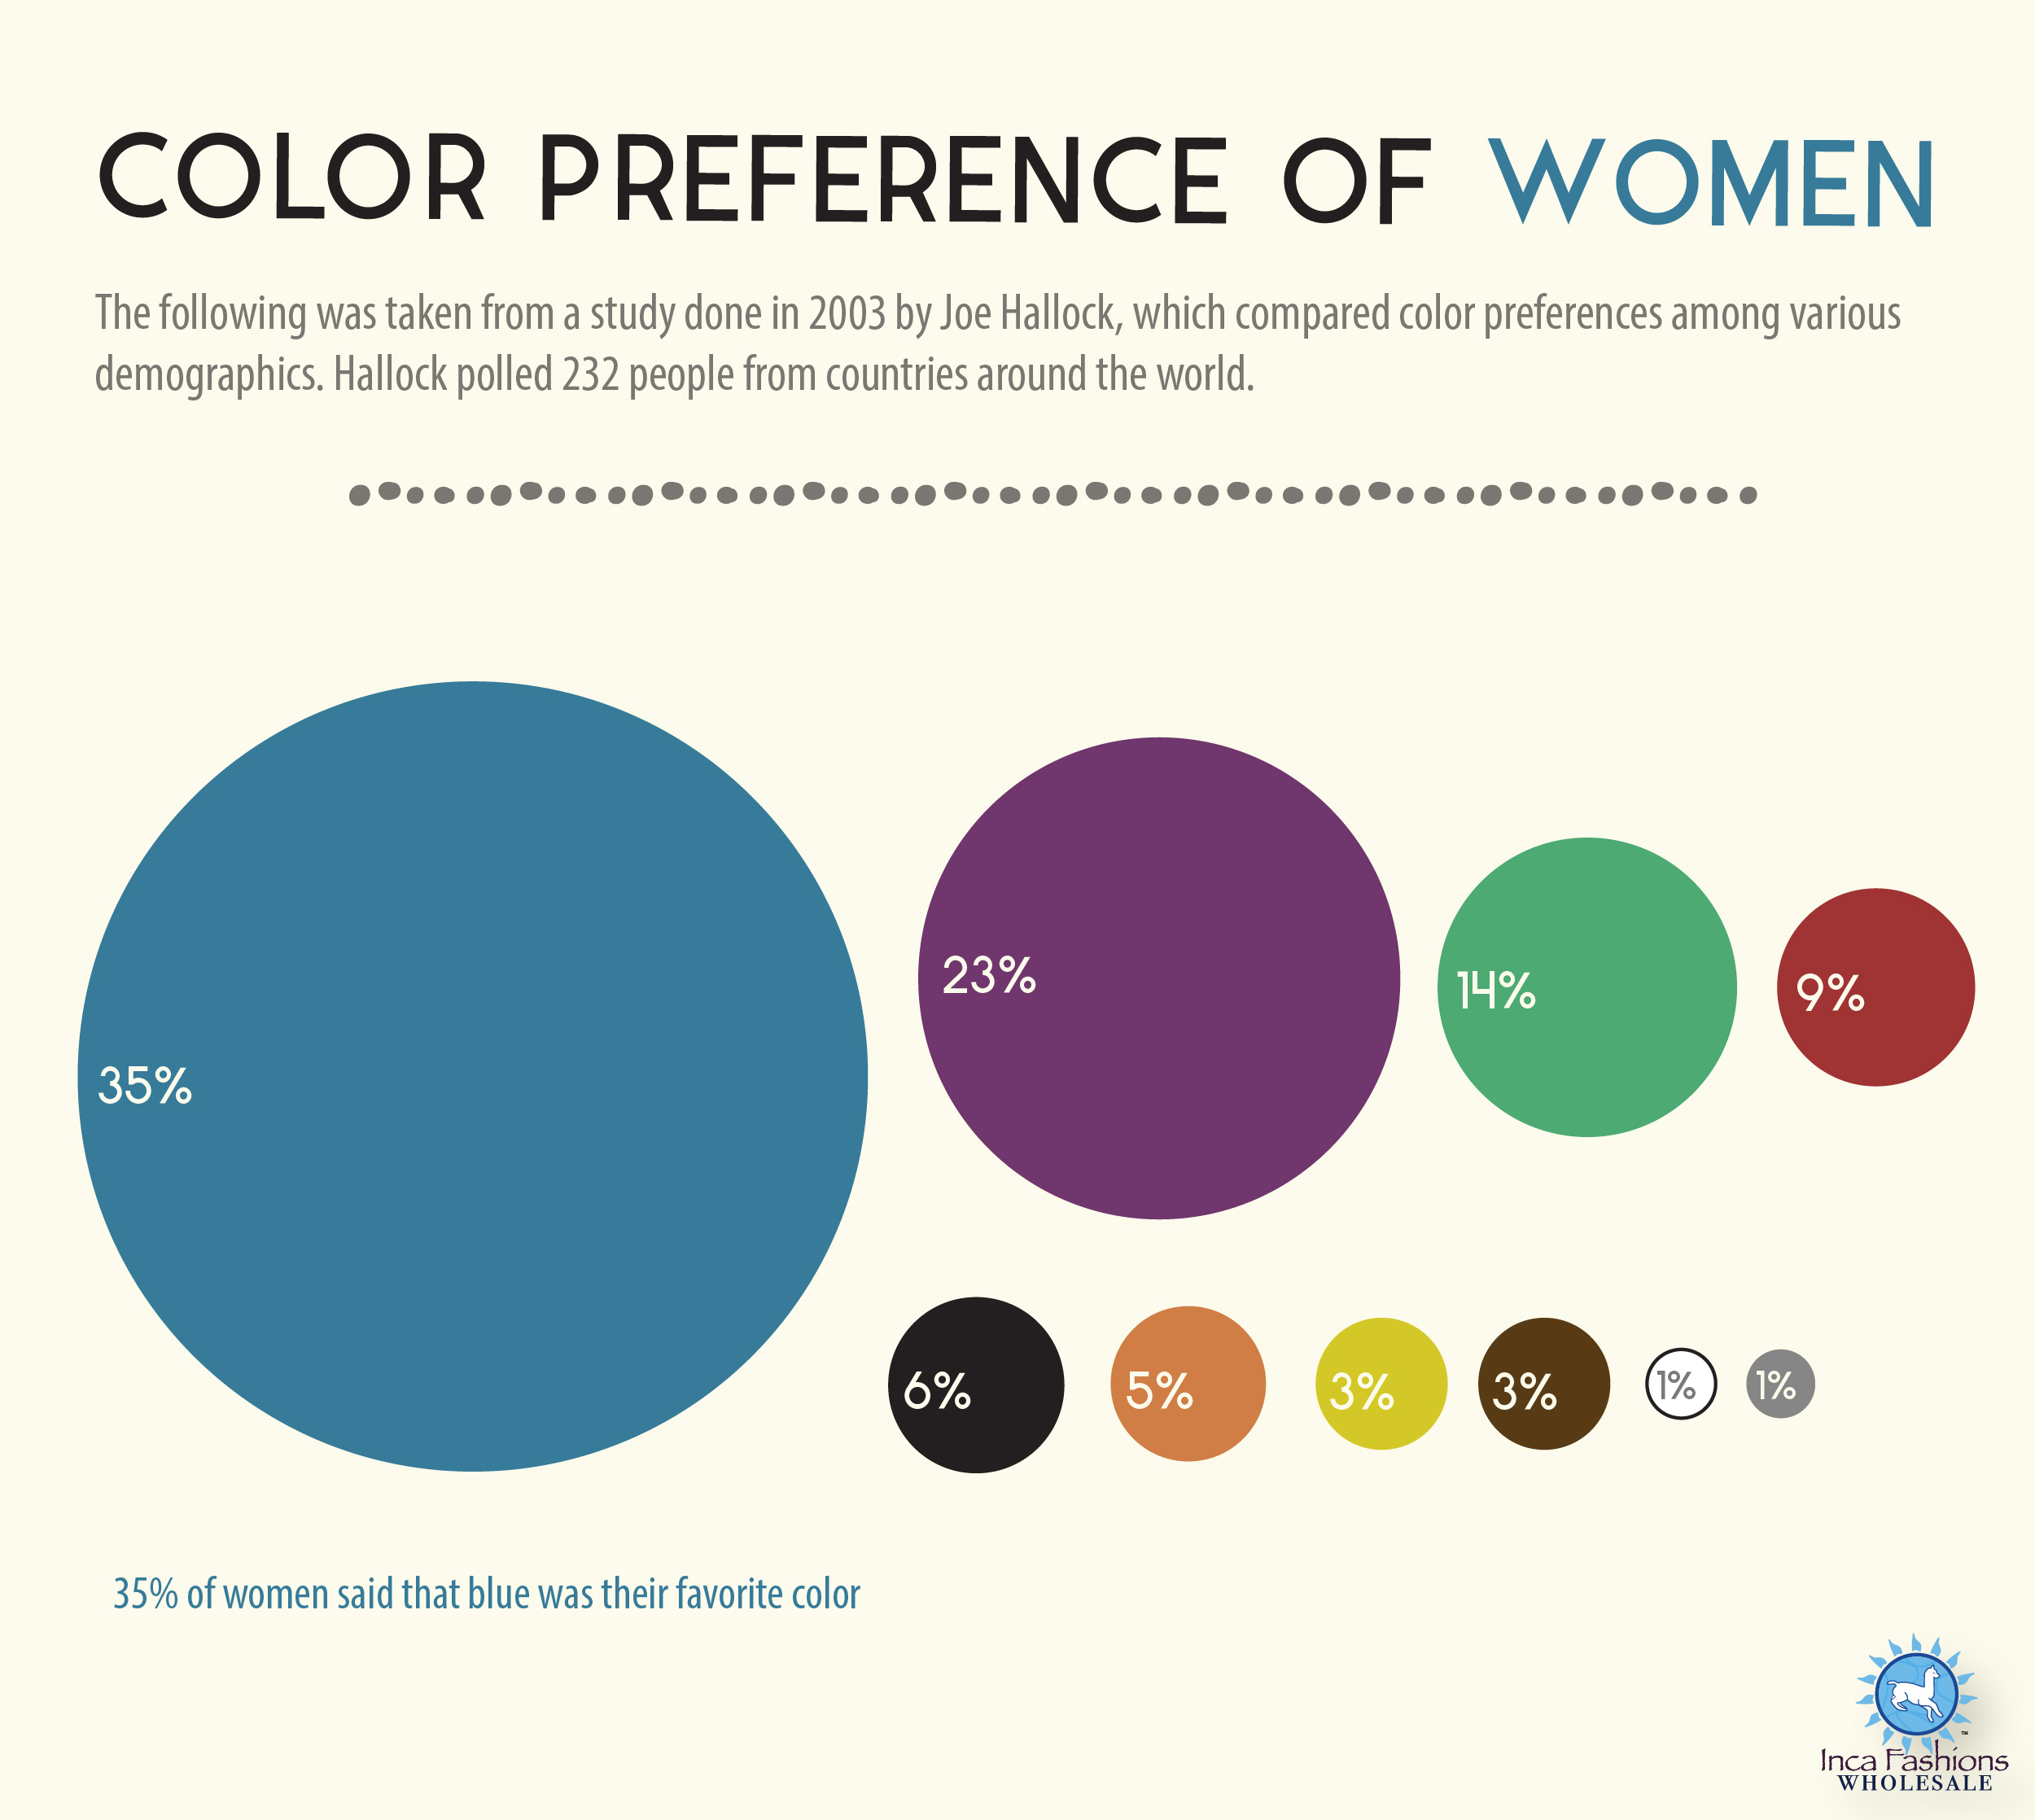 color-preference-of-women.jpg